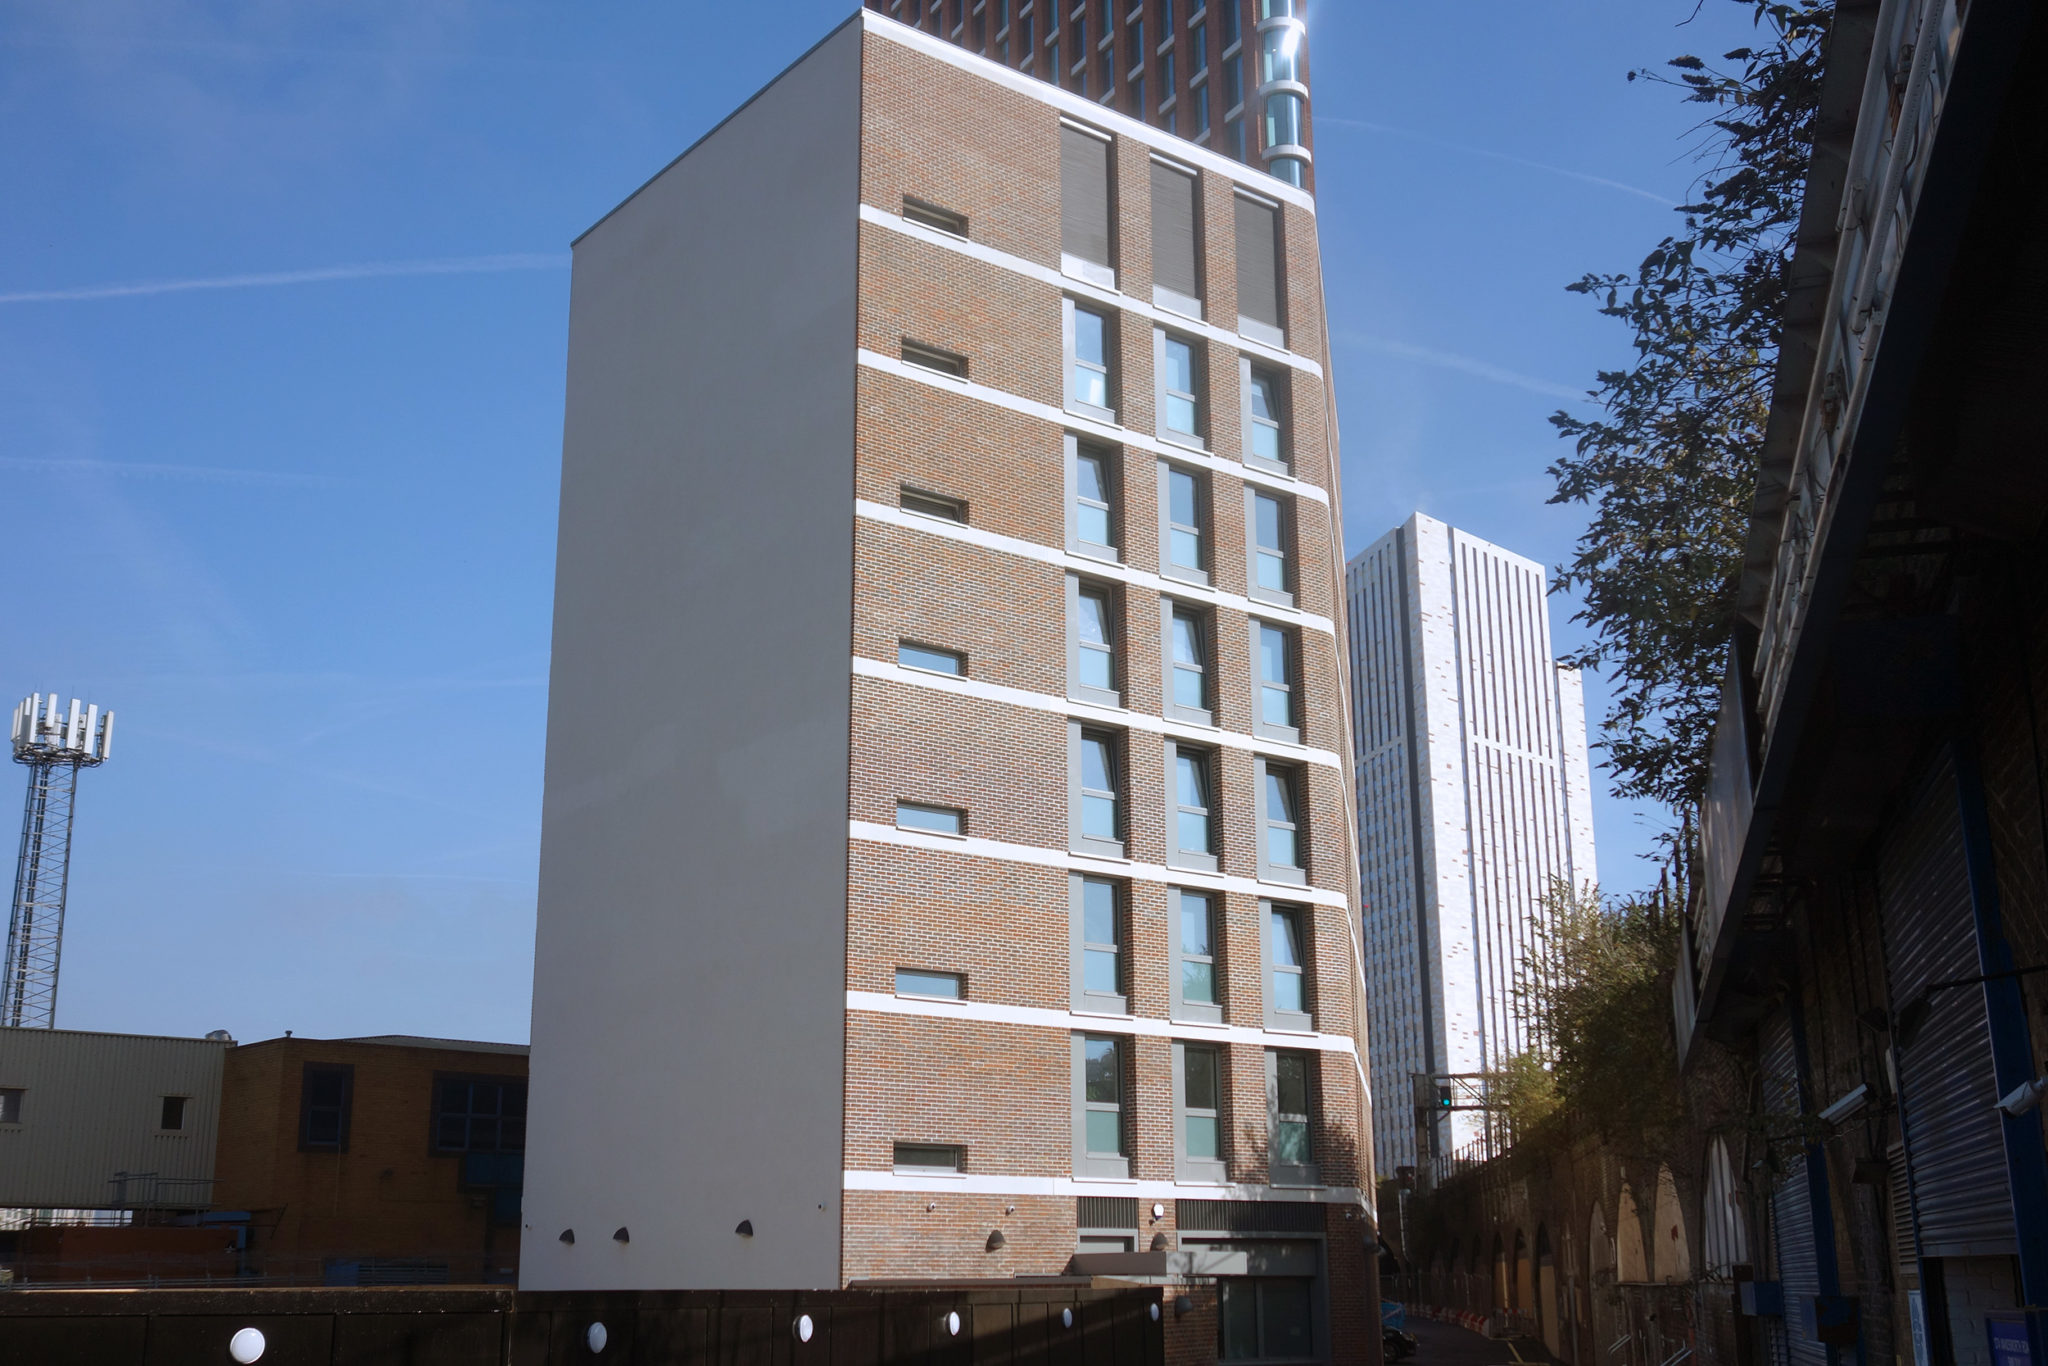 Residents move into new Thames Reach hostel